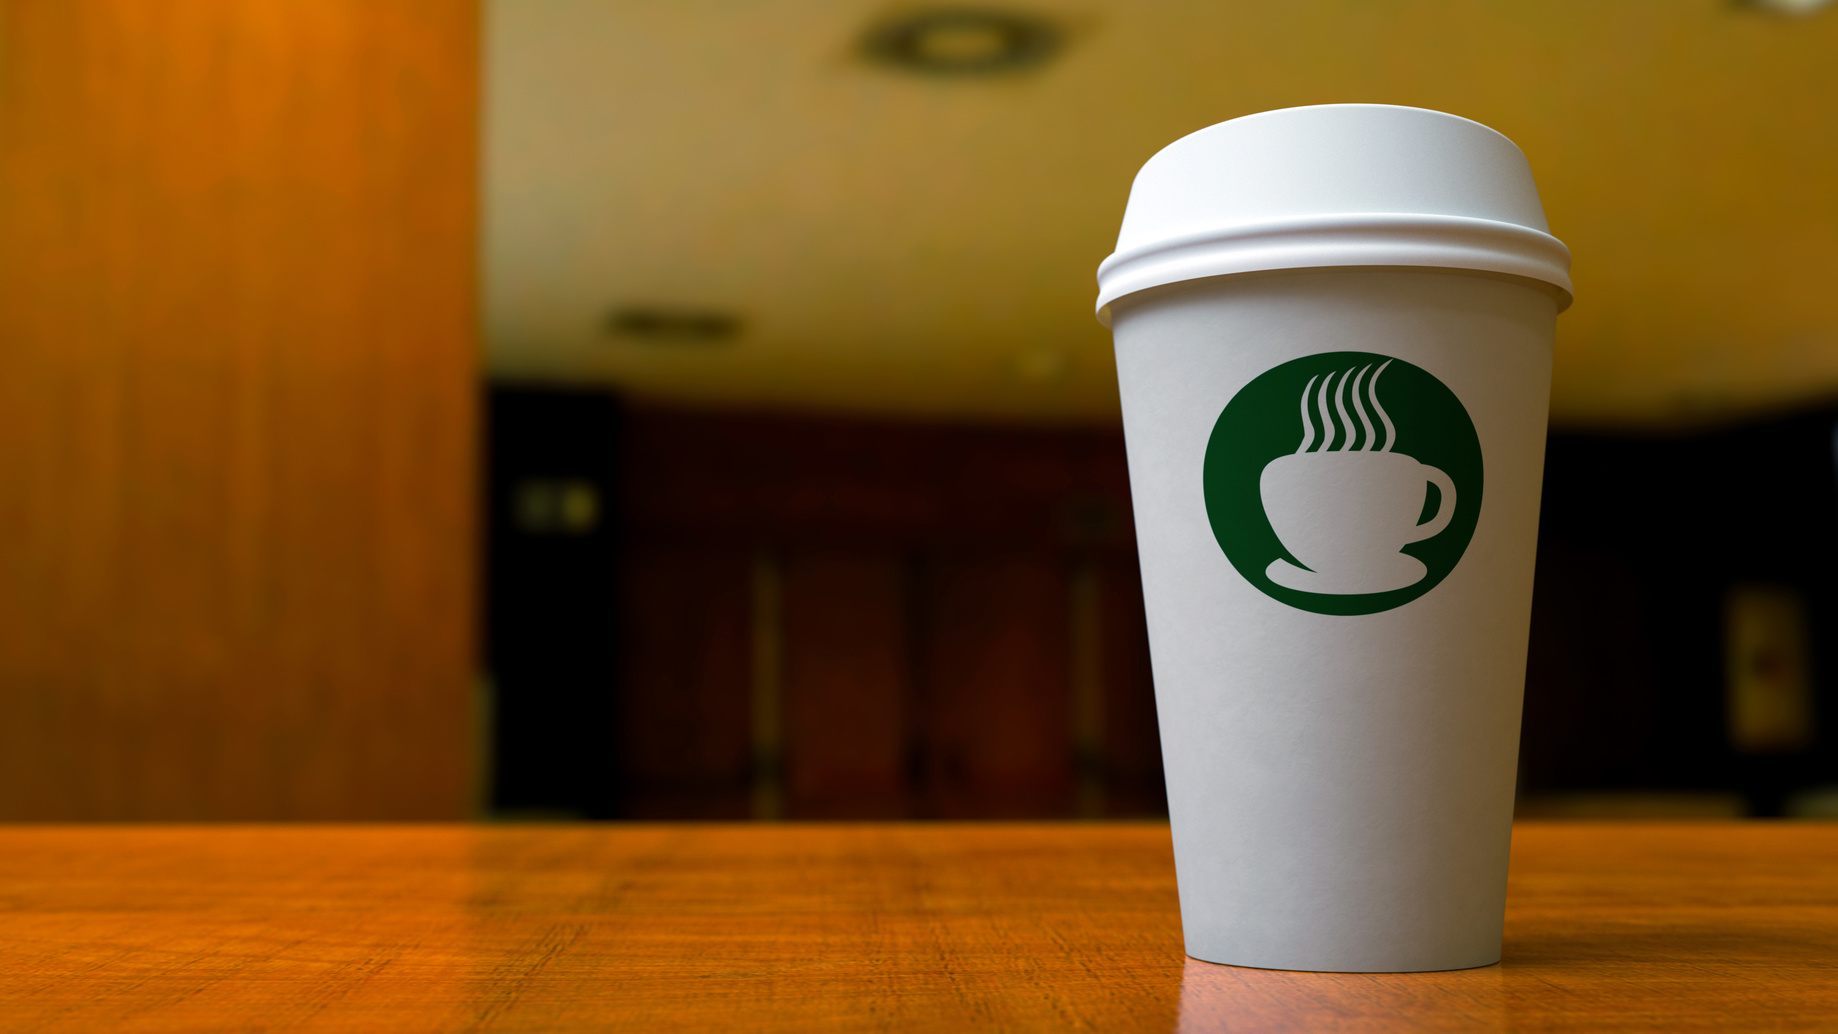 Business Service Companies: Learn from Starbucks How to Treat